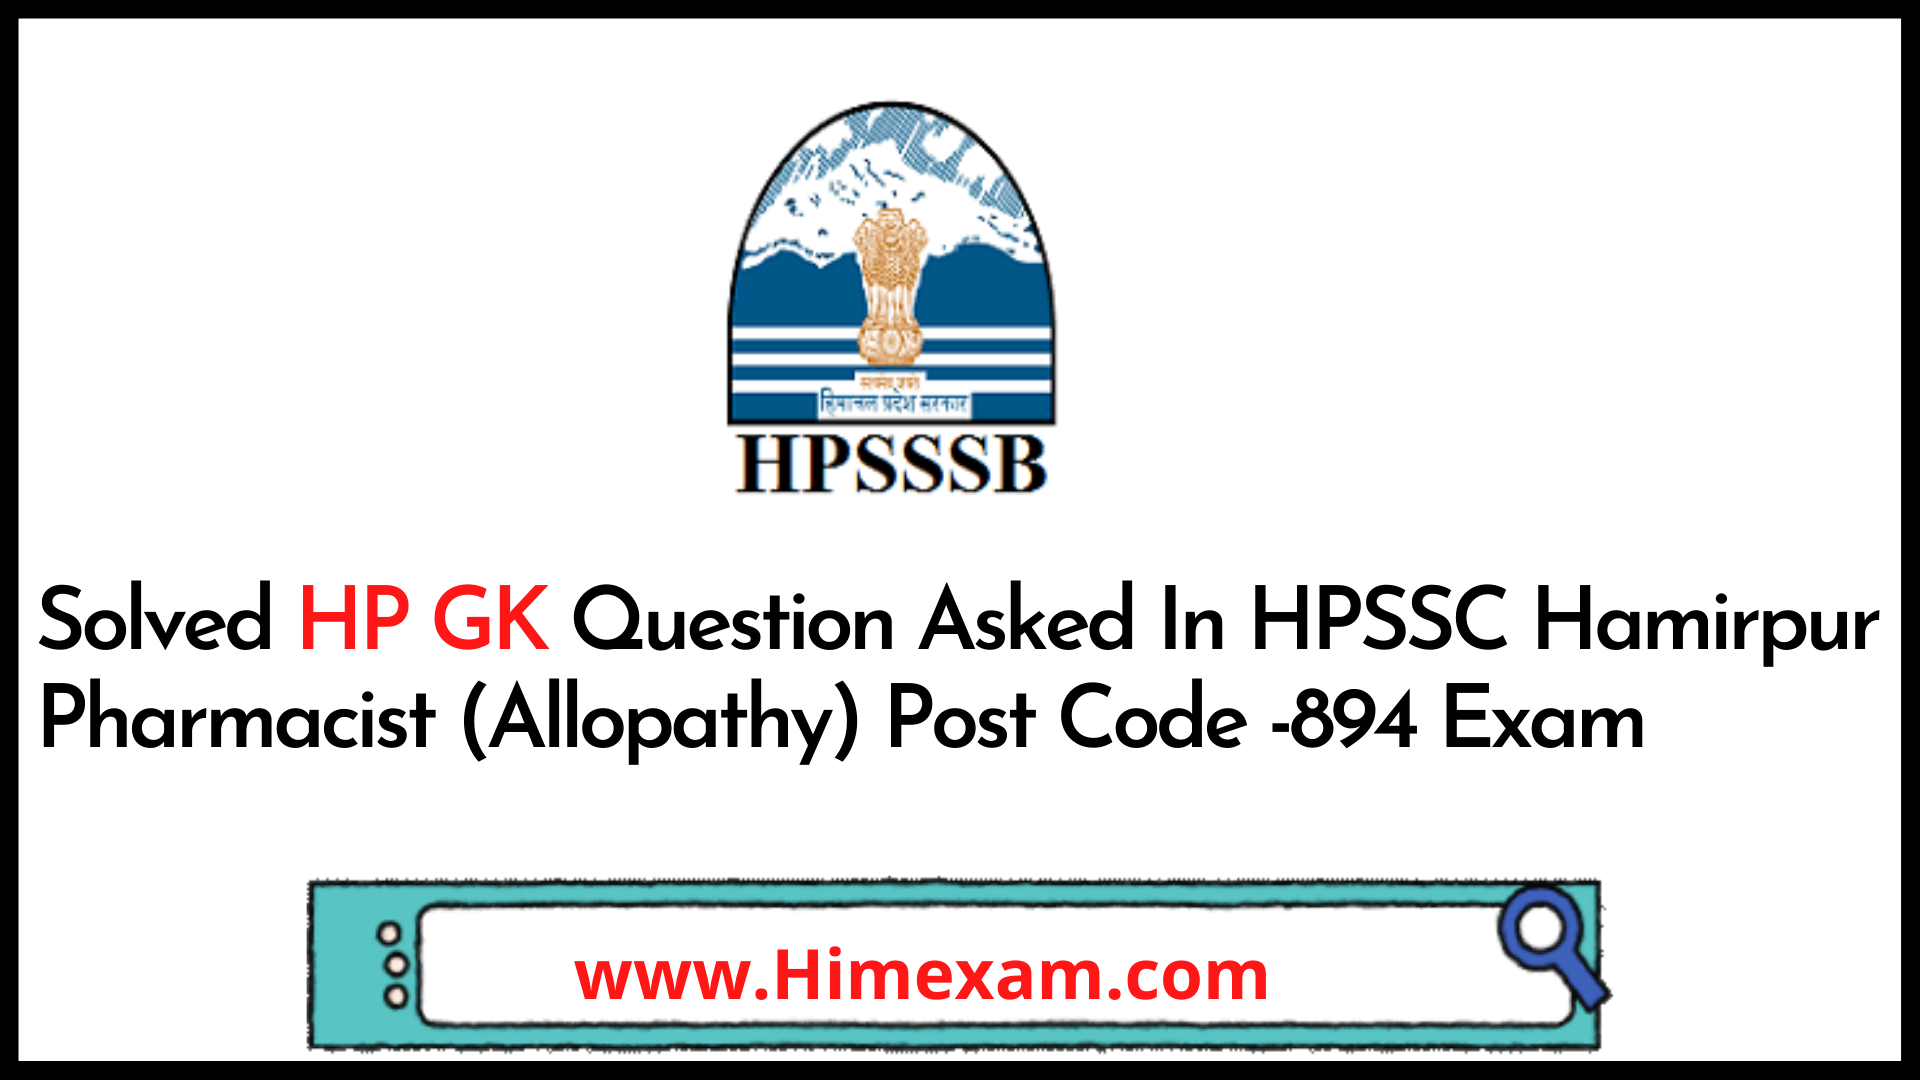 Solved HP GK Question Asked In HPSSC Hamirpur Pharmacist (Allopathy)  Post Code -894 Exam